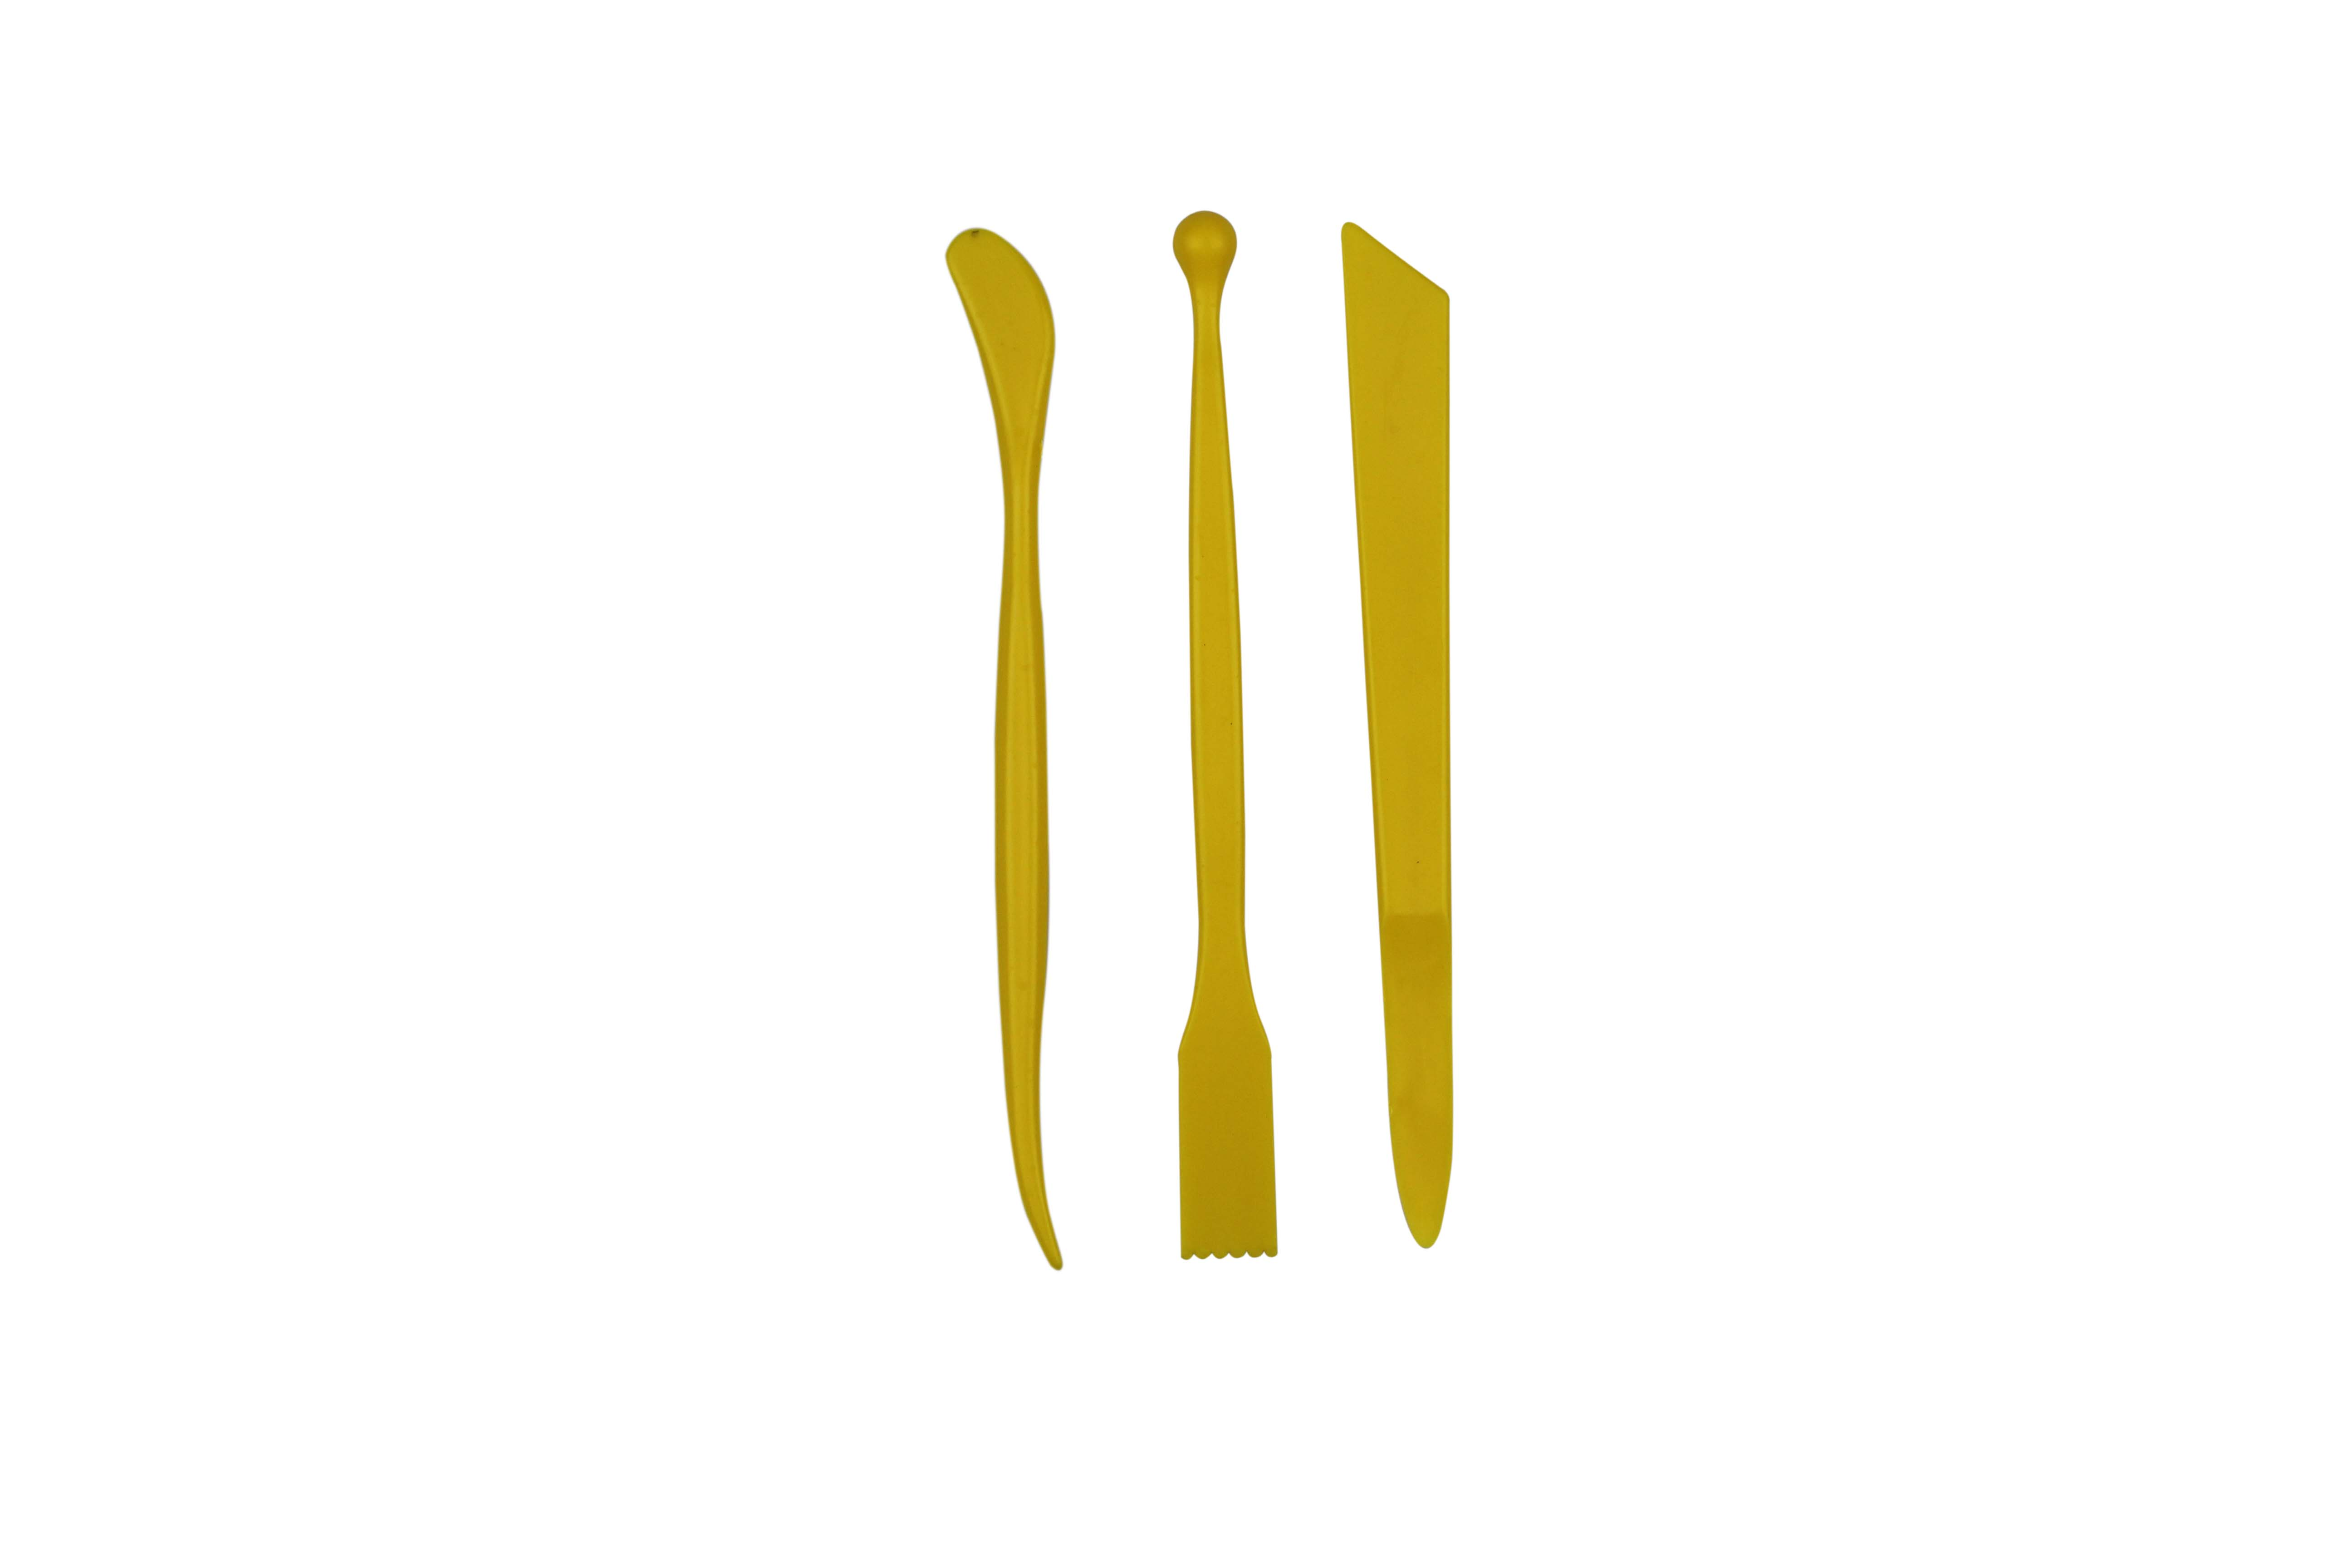 Assorted Shapes Yellow Plastic Modeling Tool Set Pack of 3